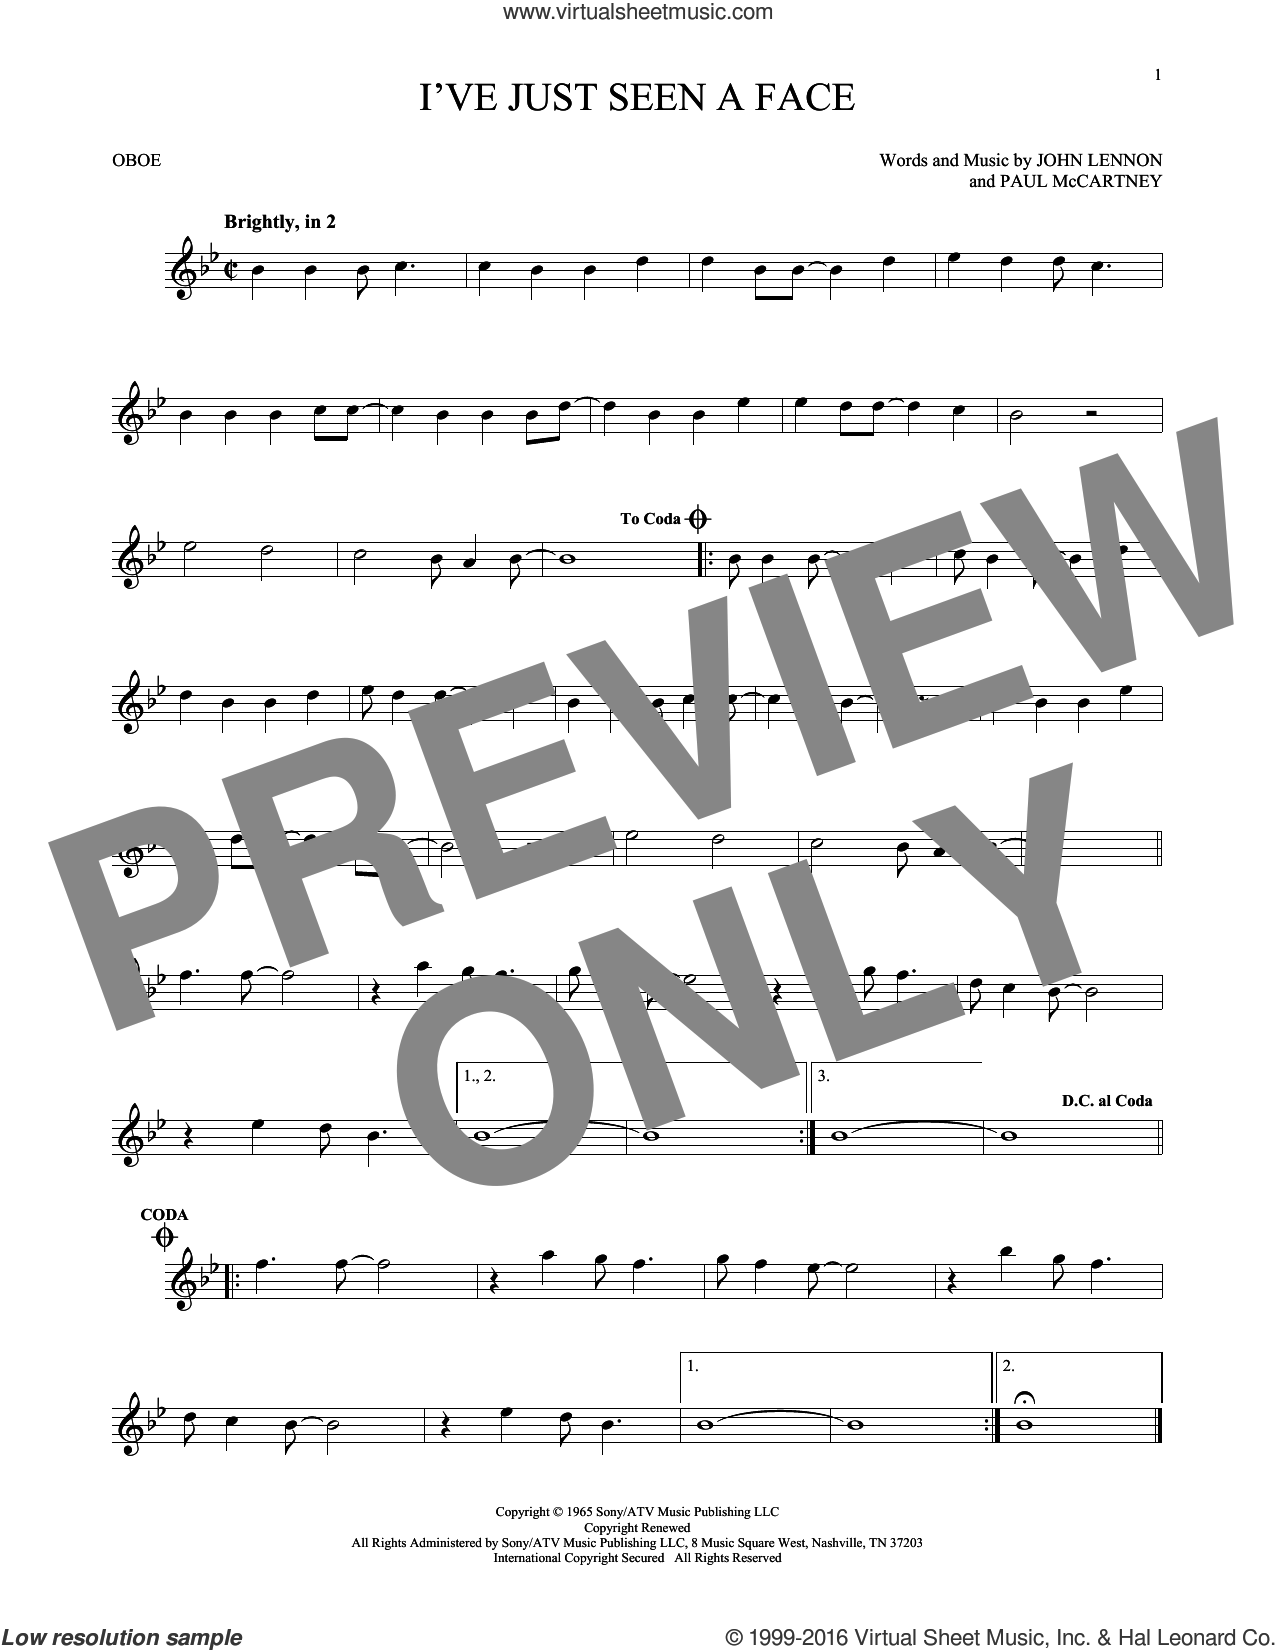 I've Just Seen A Face sheet music for oboe solo by The Beatles, John Lennon and Paul McCartney, intermediate skill level